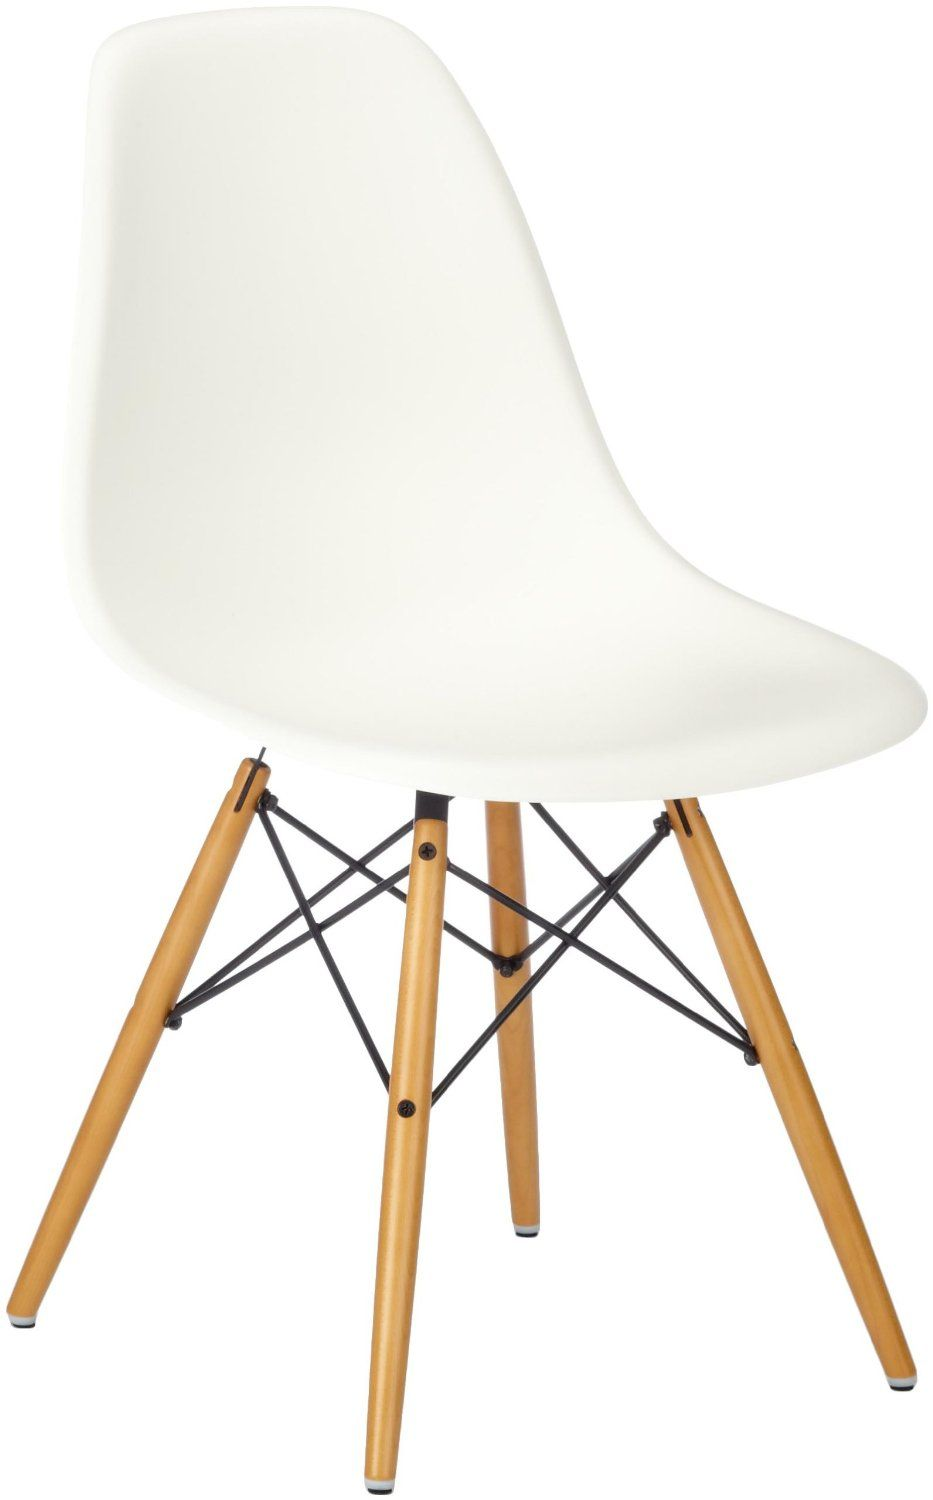 amazon kitchen chairs Vitra Eames Plastic Side Chair DSW base maple yellowish white seat Amazon